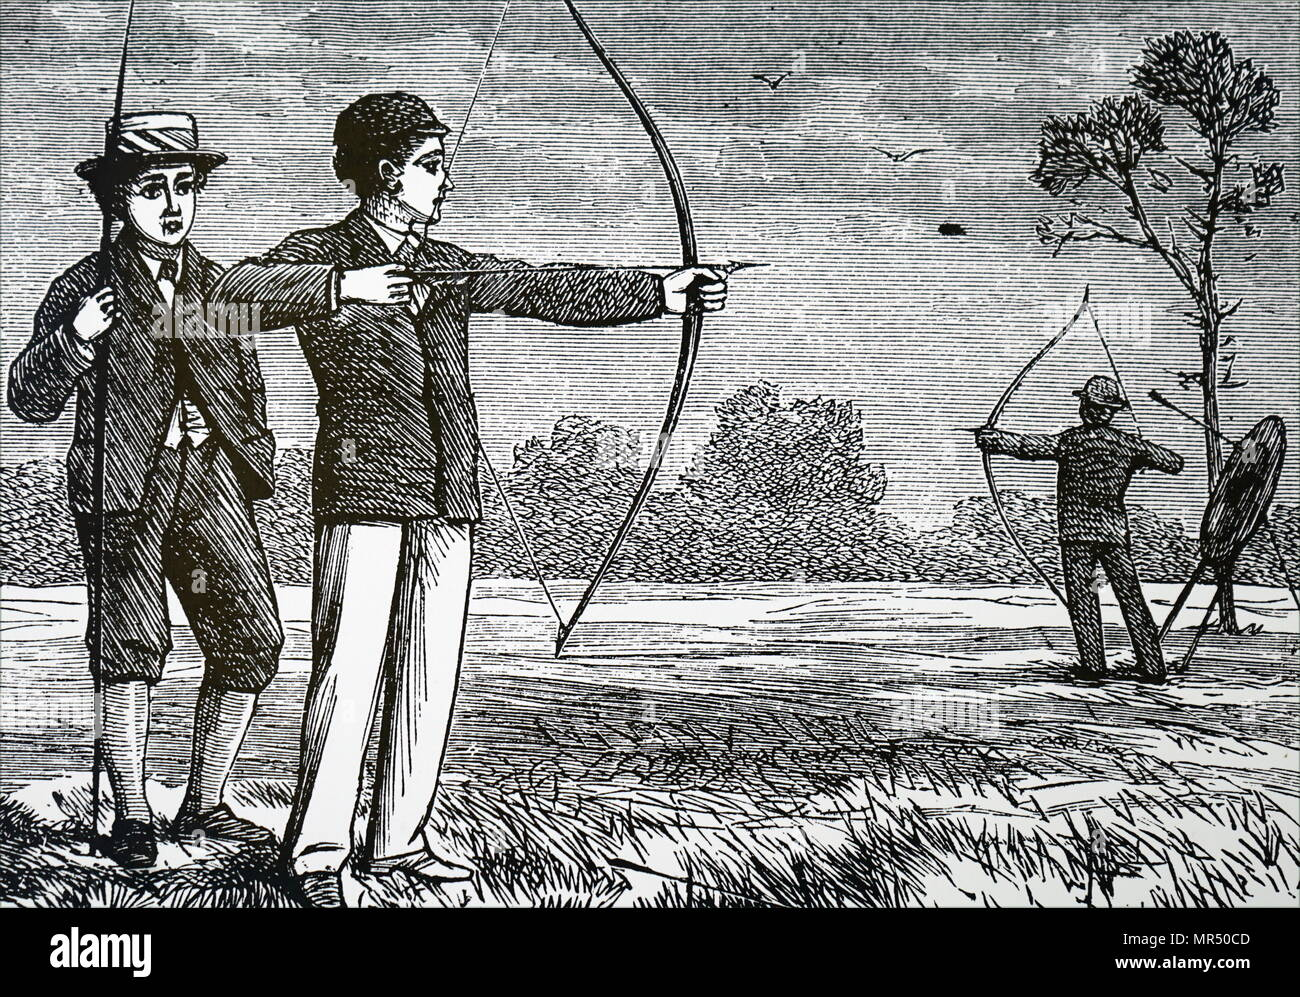 Illustration depicting two schoolboys during an archery lesson. Dated 19th century - Stock Image